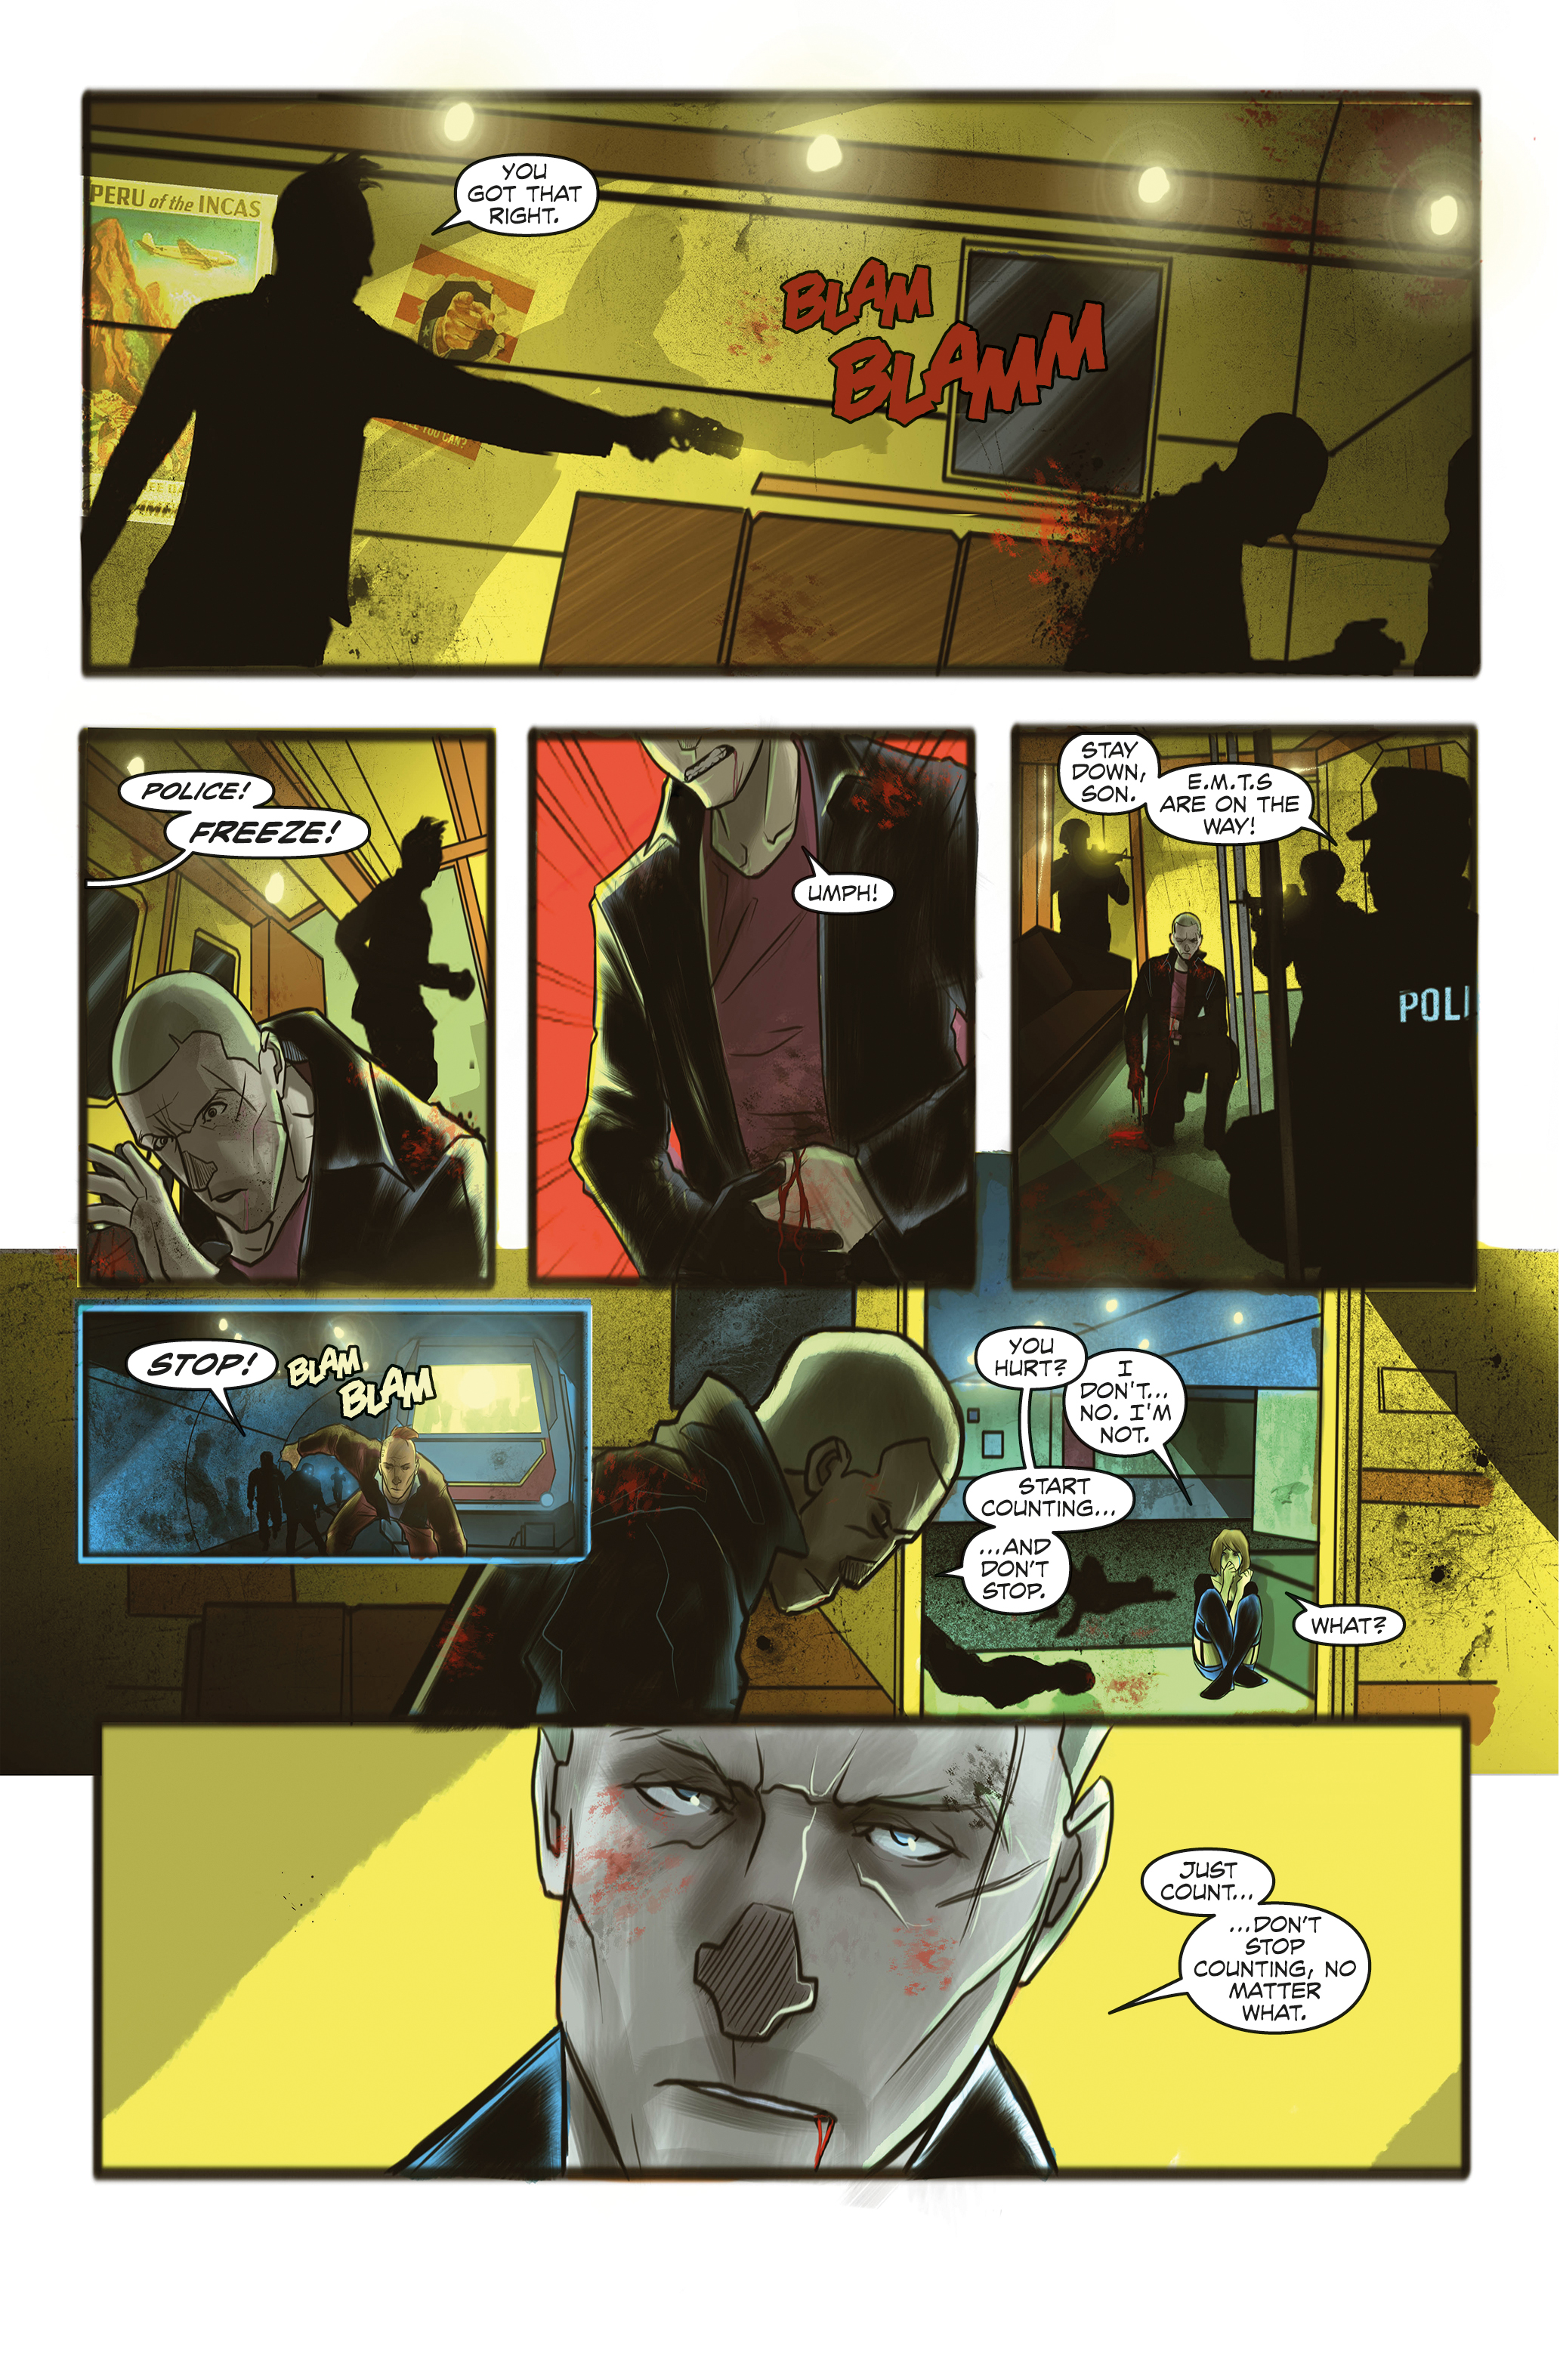 Shelter Division #1 Page 20-01.jpg